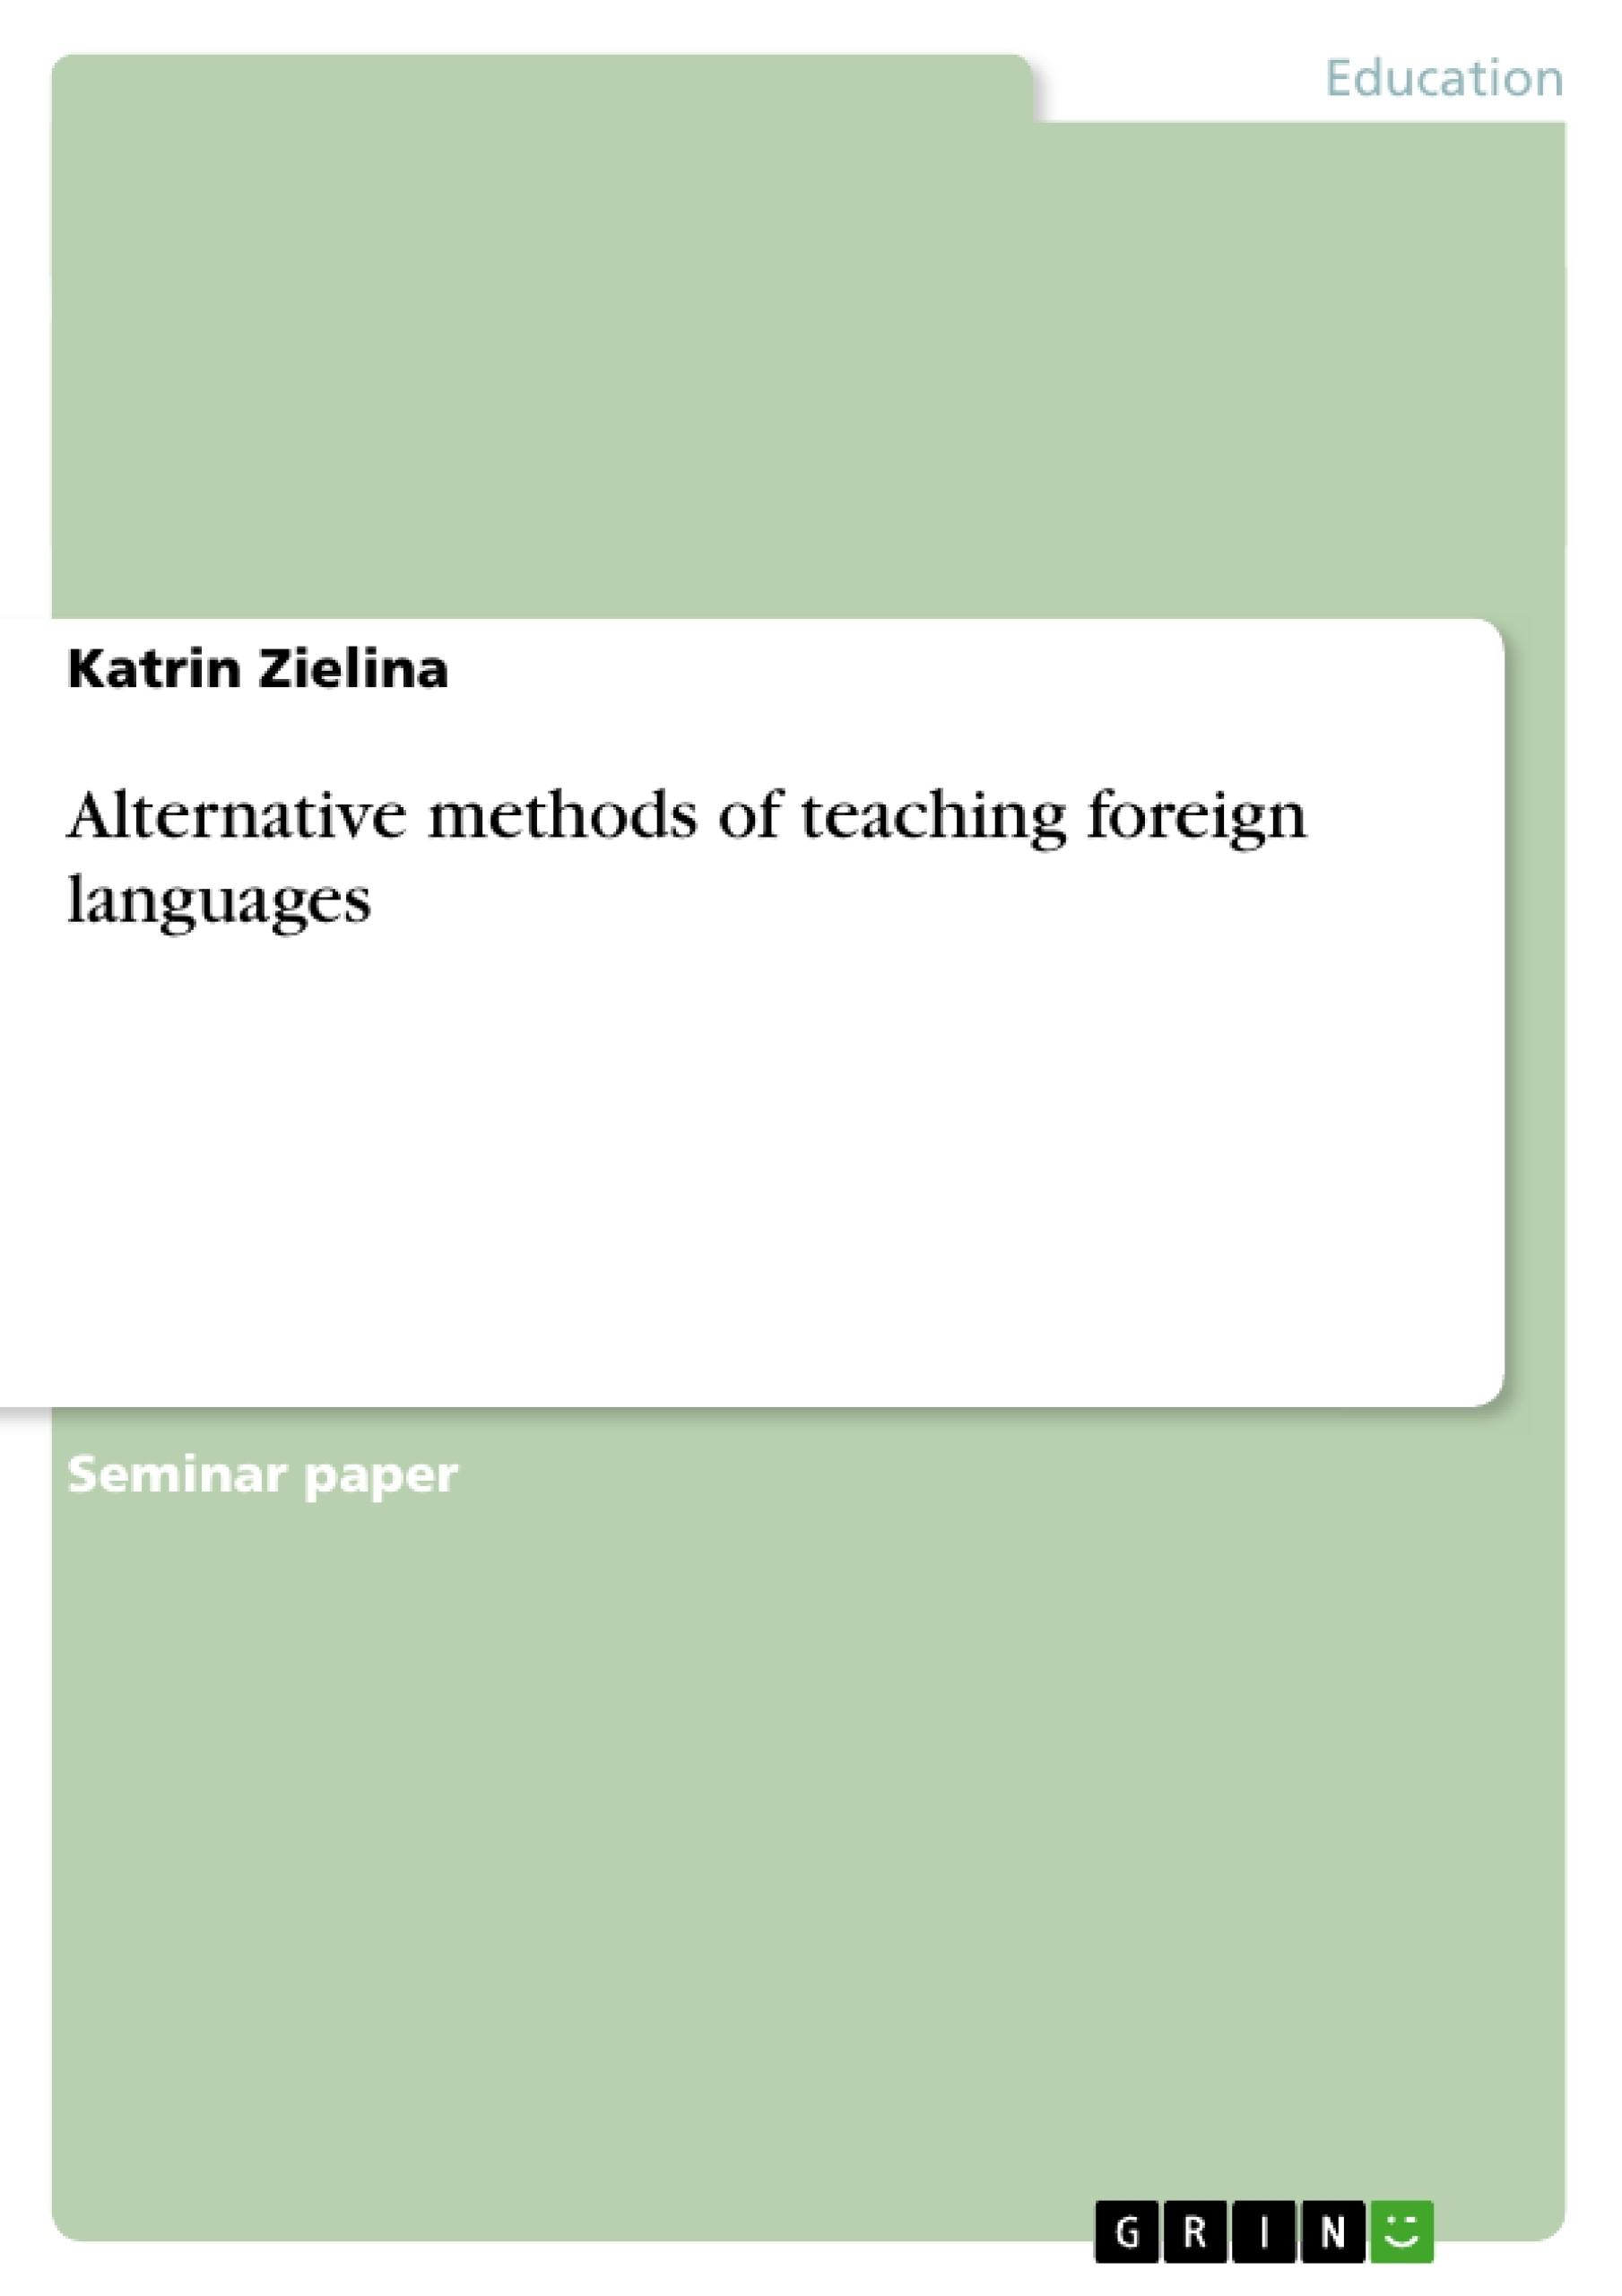 Title: Alternative methods of teaching foreign languages